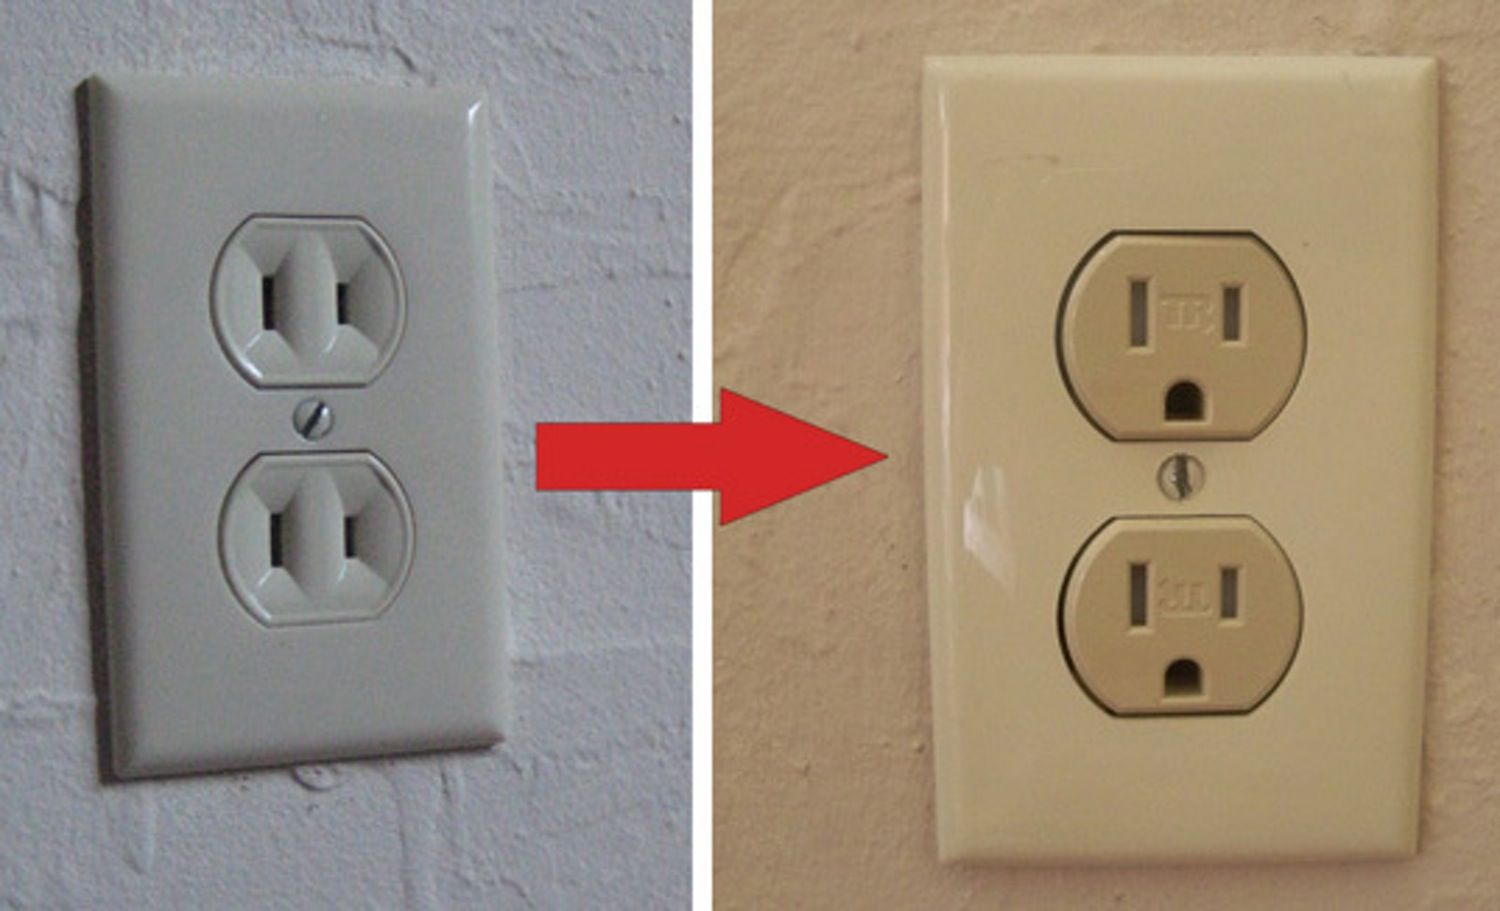 How To Swap A Two Prong For A Three Prong Outlet Diy Home Improvement Diy Home Repair Home Improvement Projects